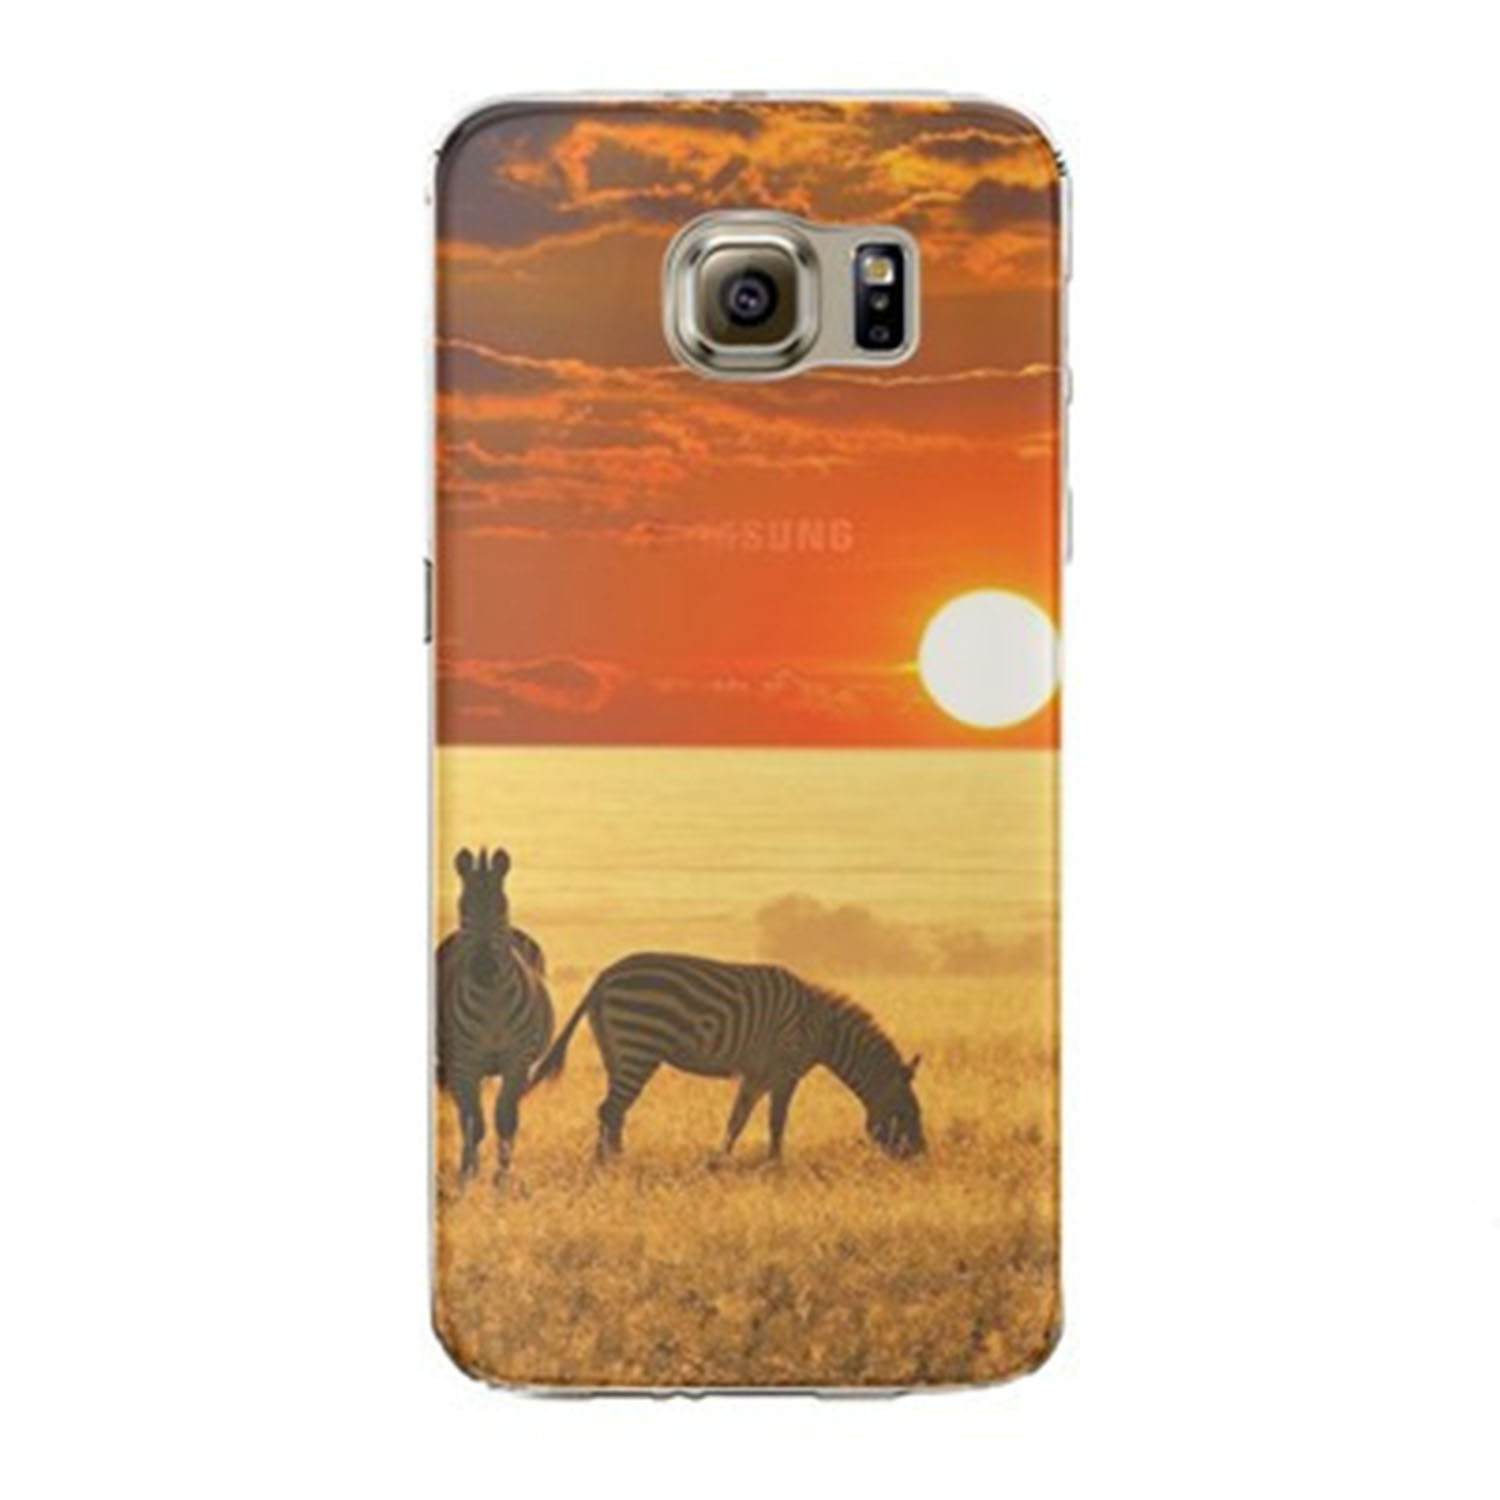 Kritzel Case Collection Galaxy S7 edge - Nature #307